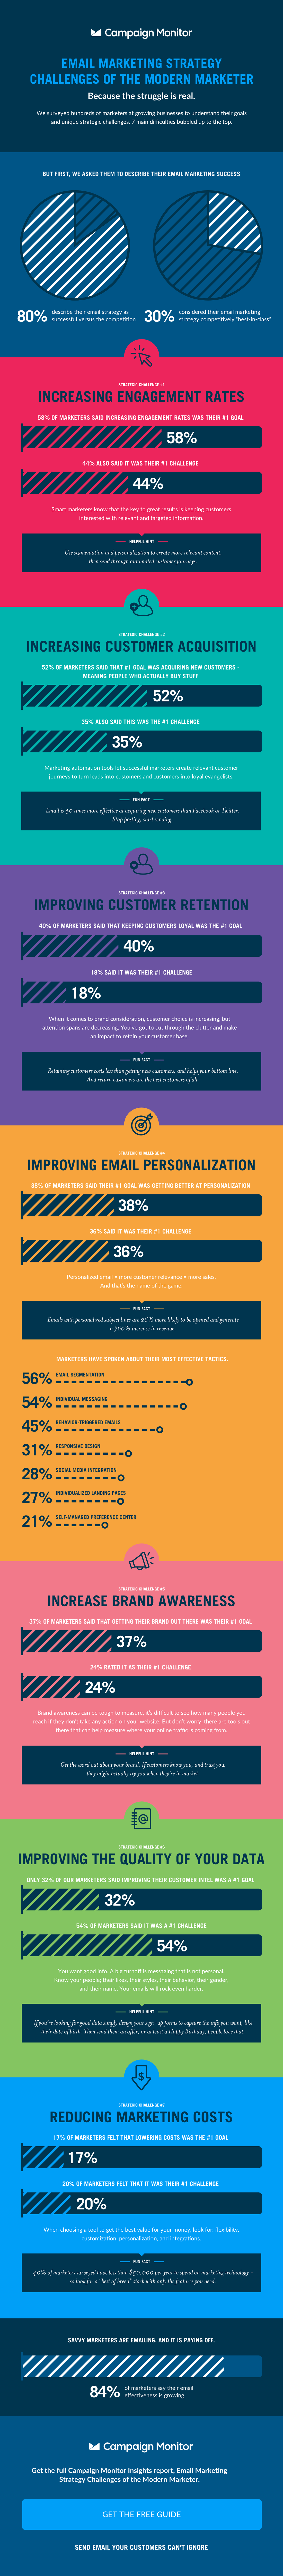 Challenges of Email Marketing